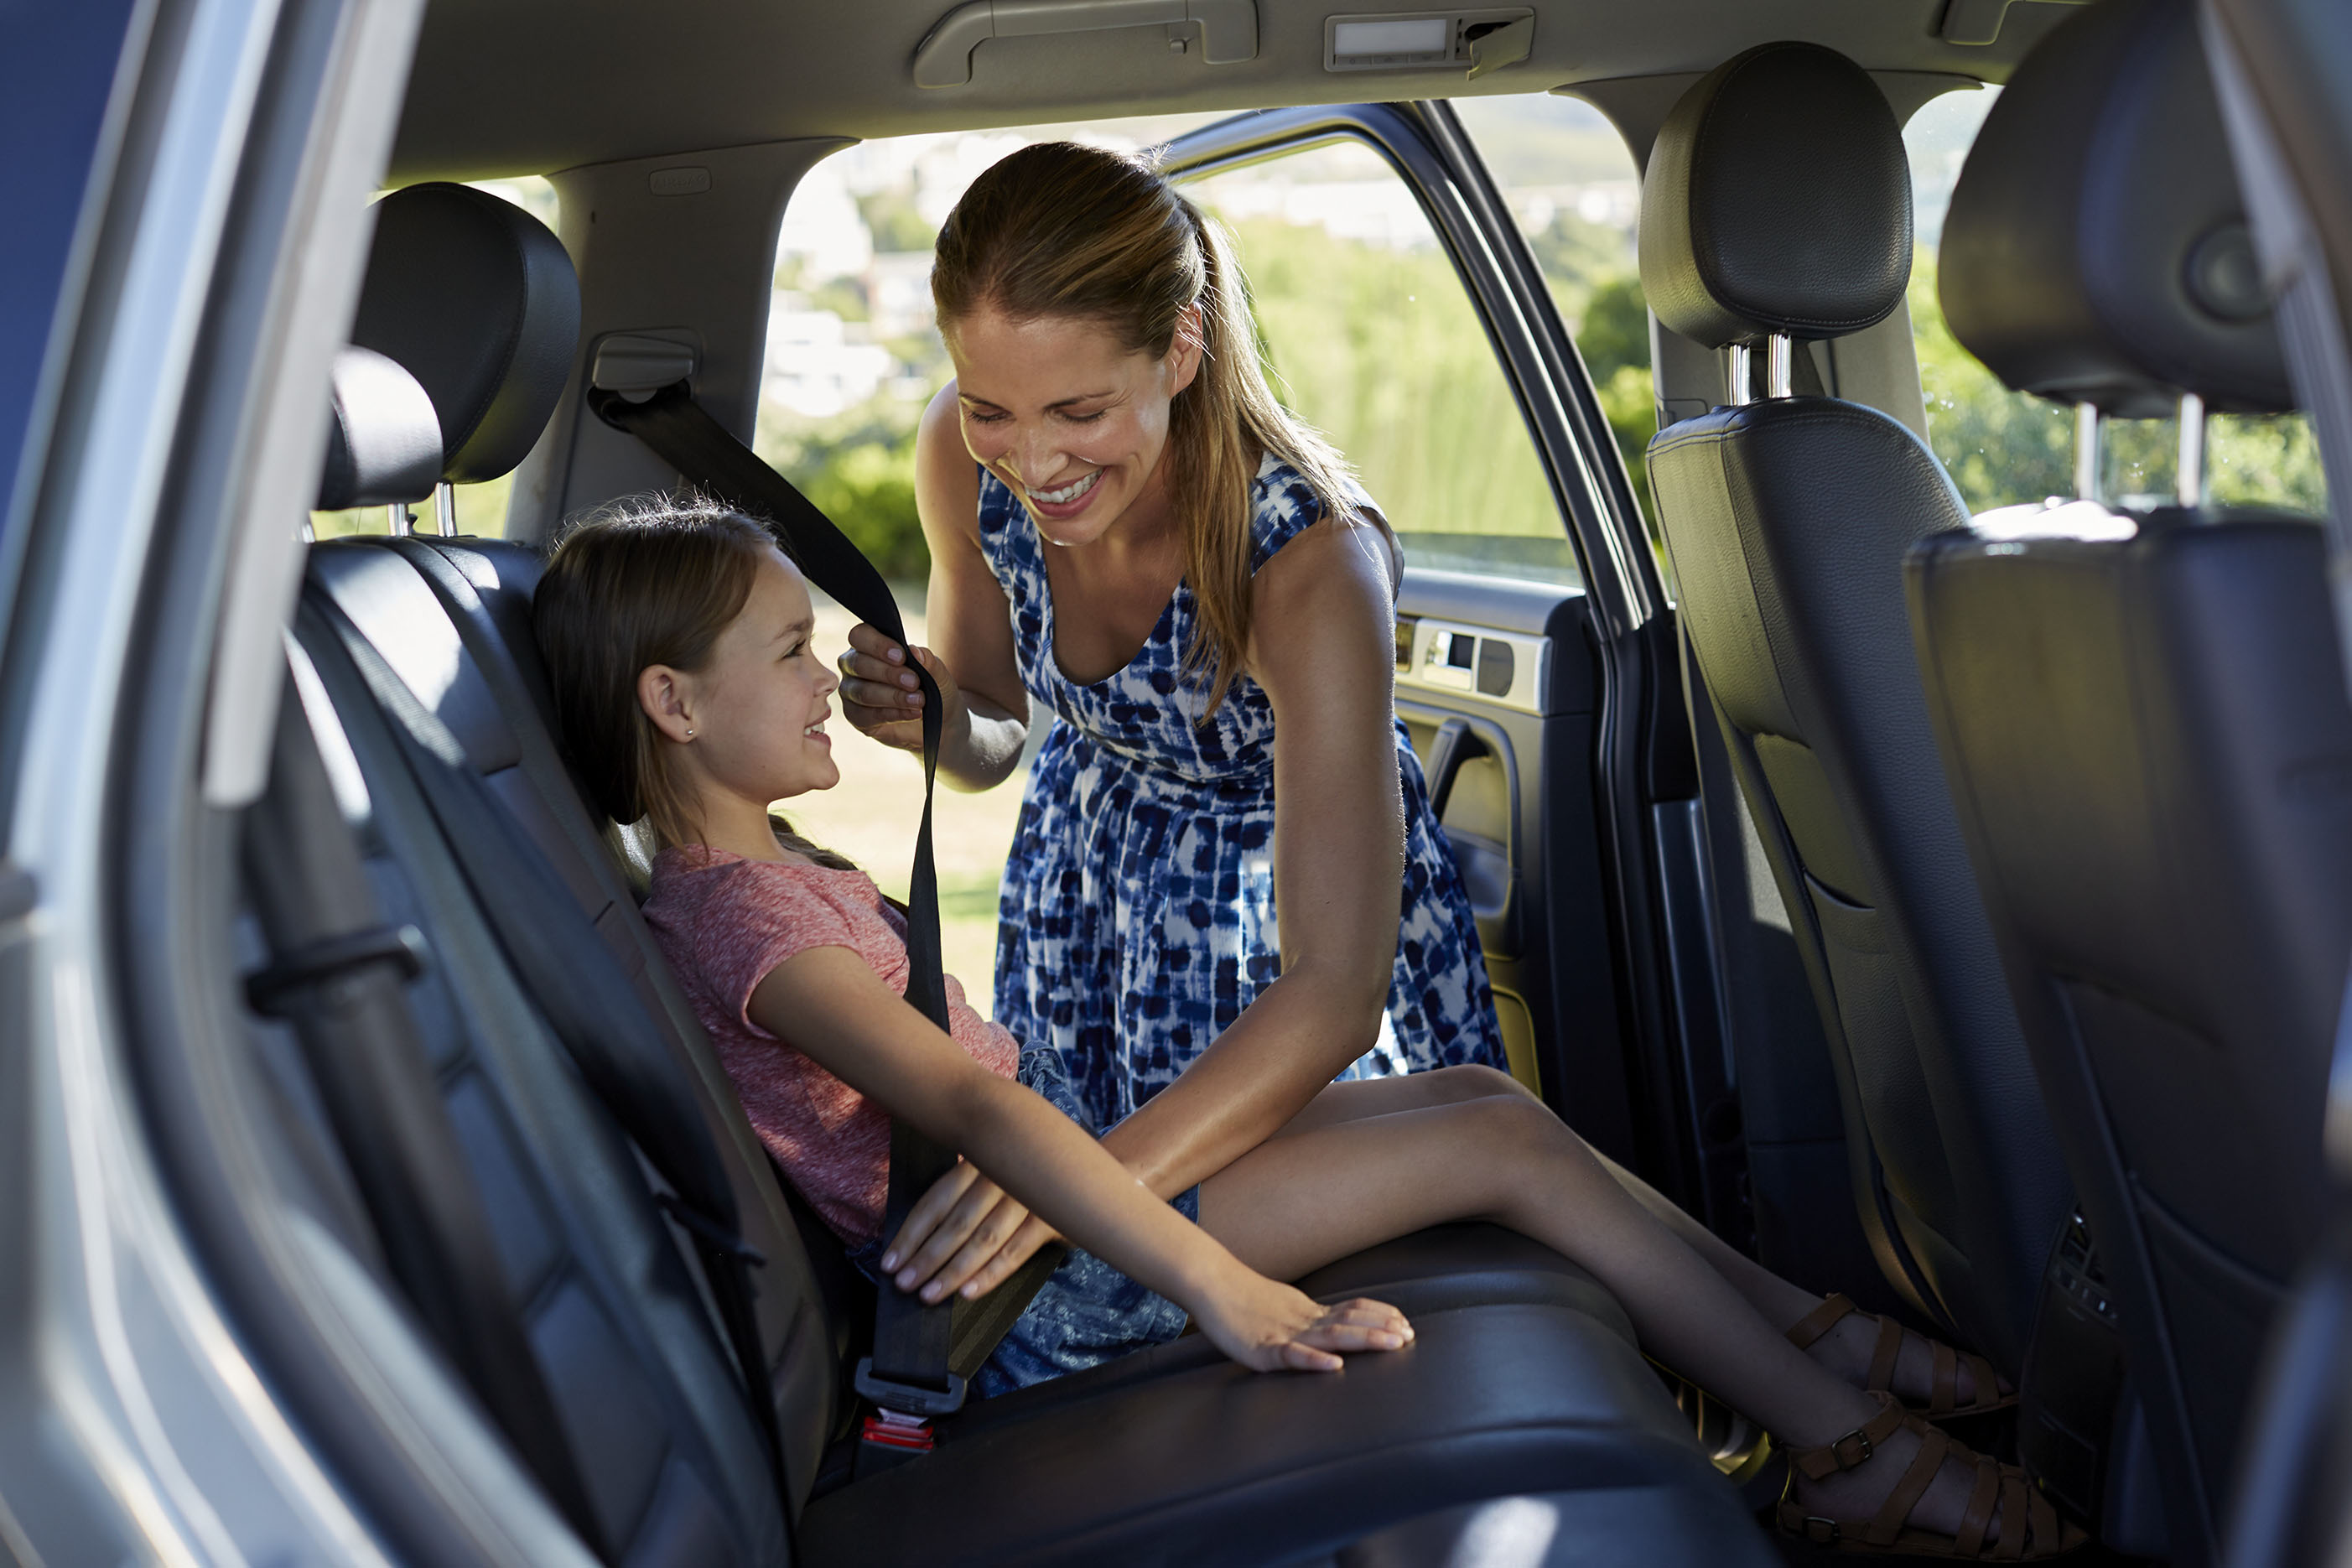 Woman smiling and buckling her daughter's seatbelt